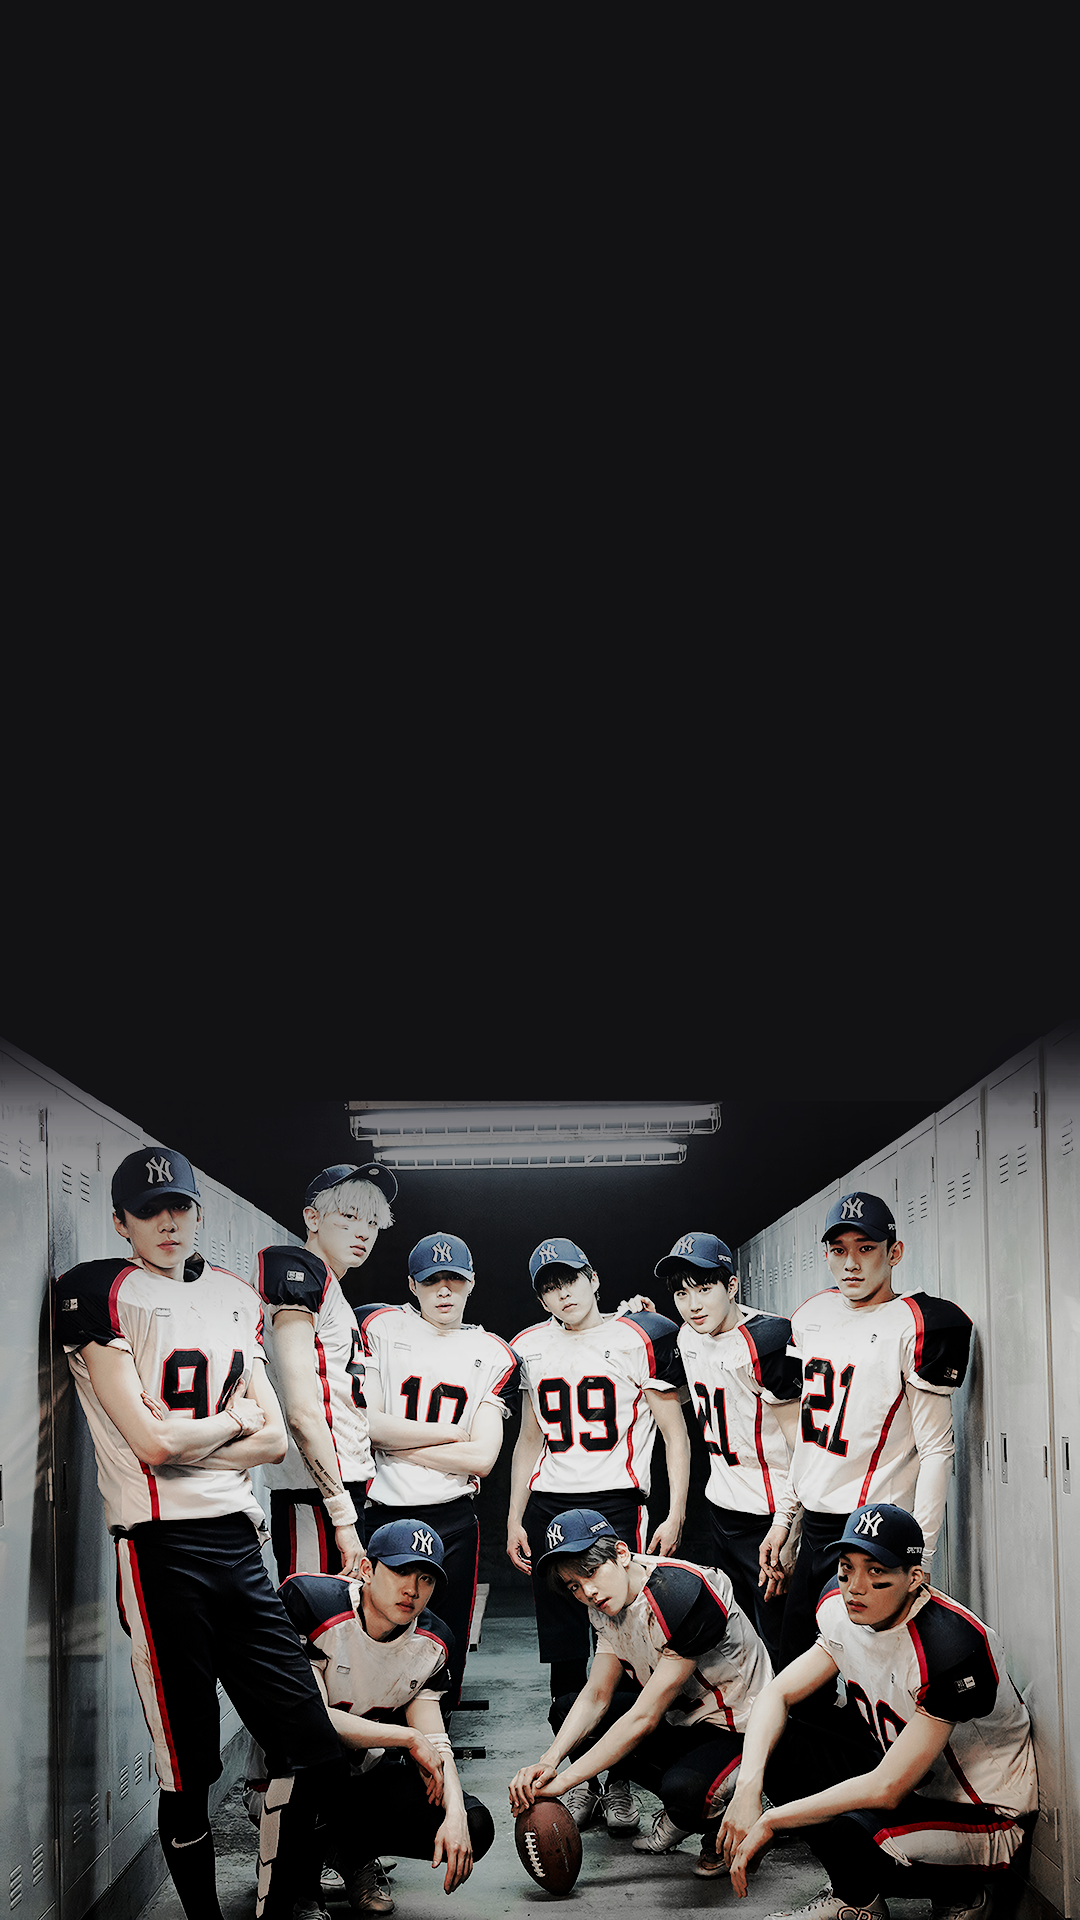 Love Me Right Iphone Wallpaper : exo iphone wallpaper w a l l p a p e r // K p o p Pinterest Exo, Wallpaper and Kpop